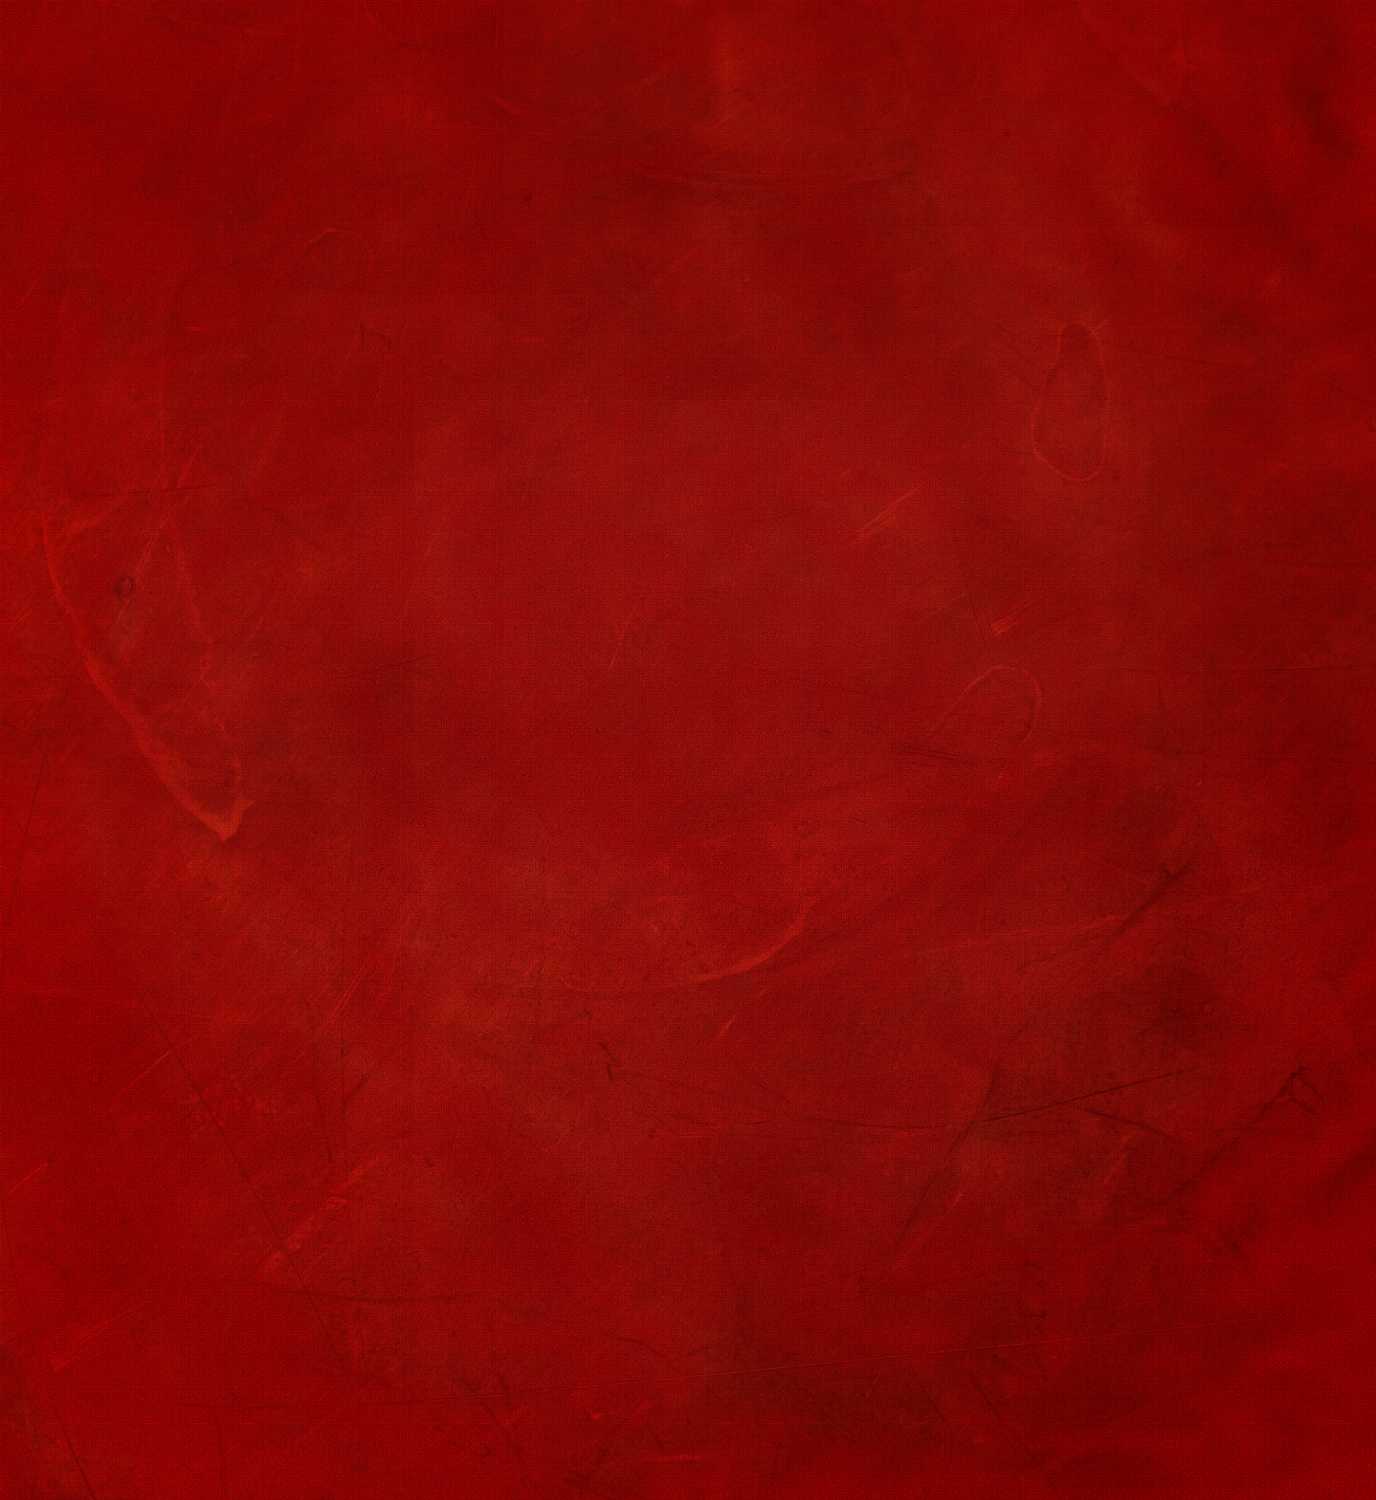 red textured backgrounds - photo #22